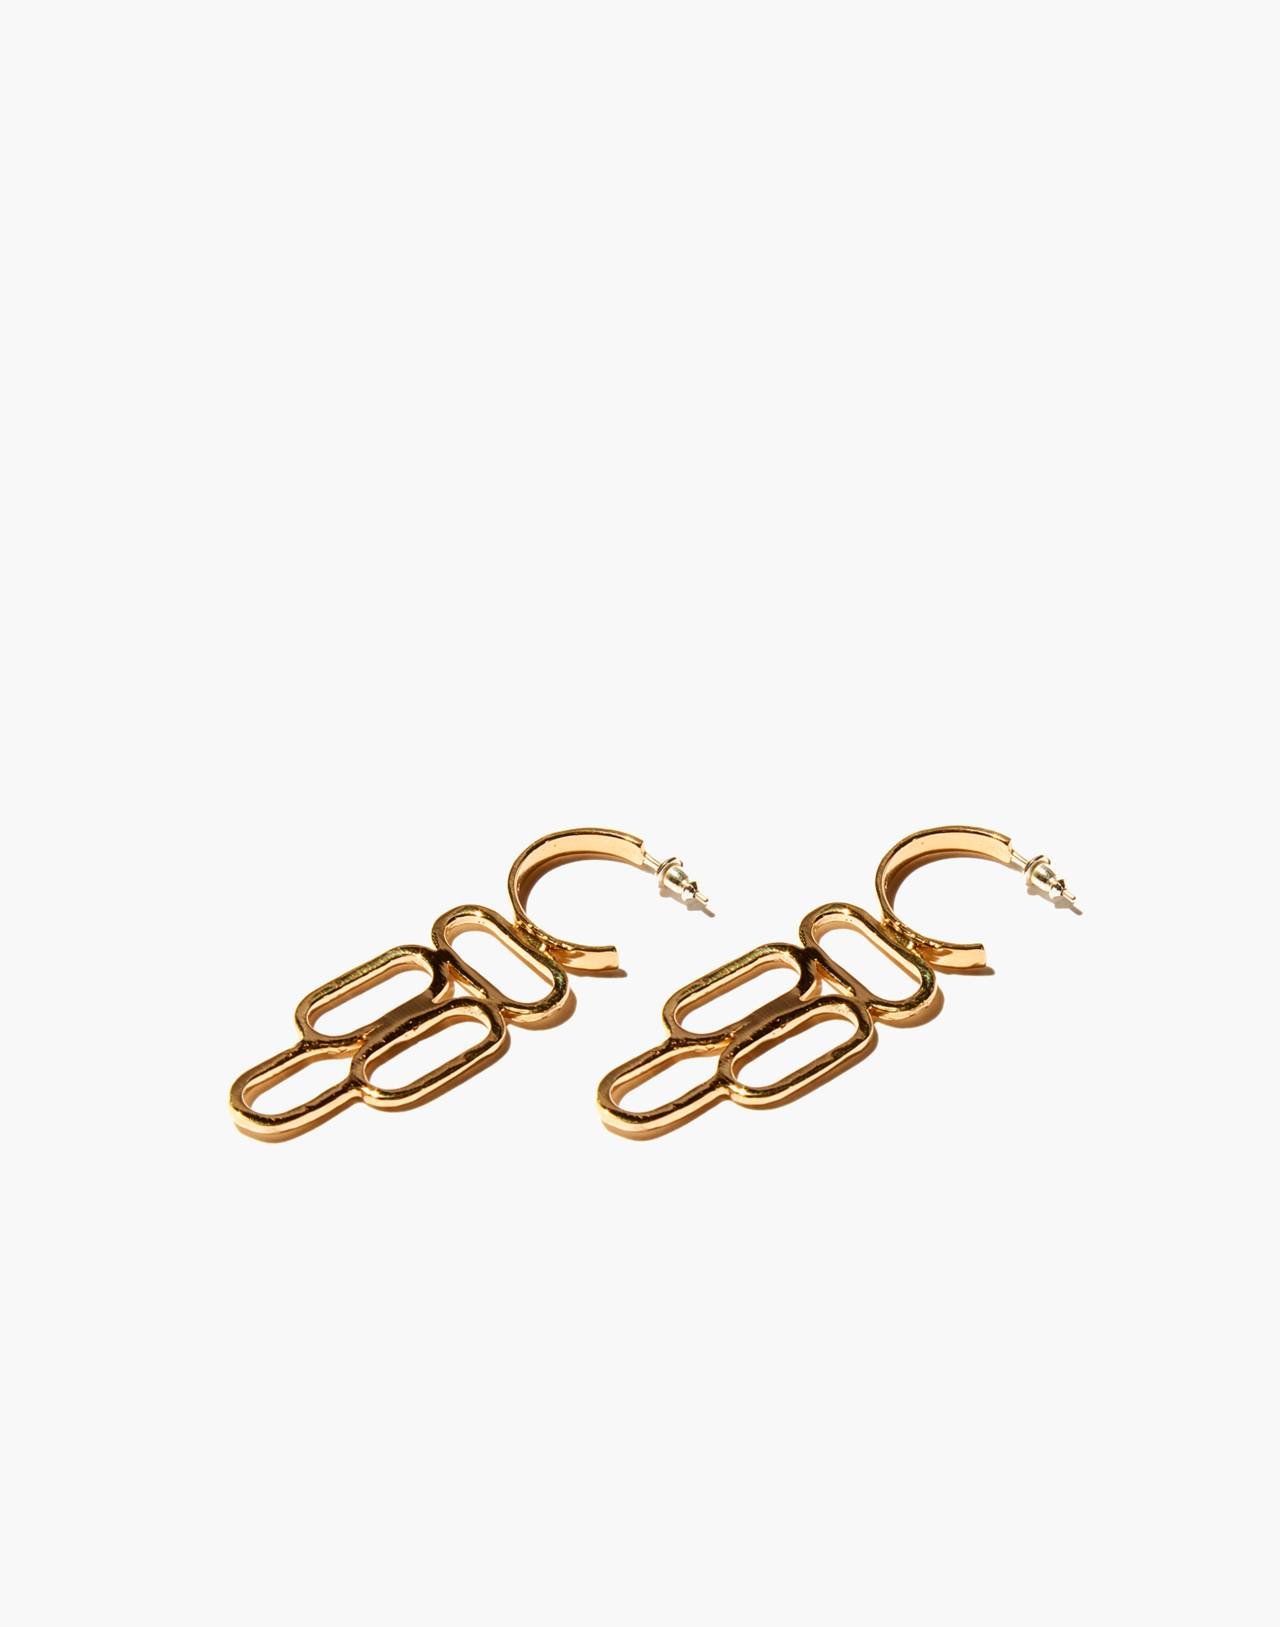 Odette New York® Dauphin Earrings in gold image 1